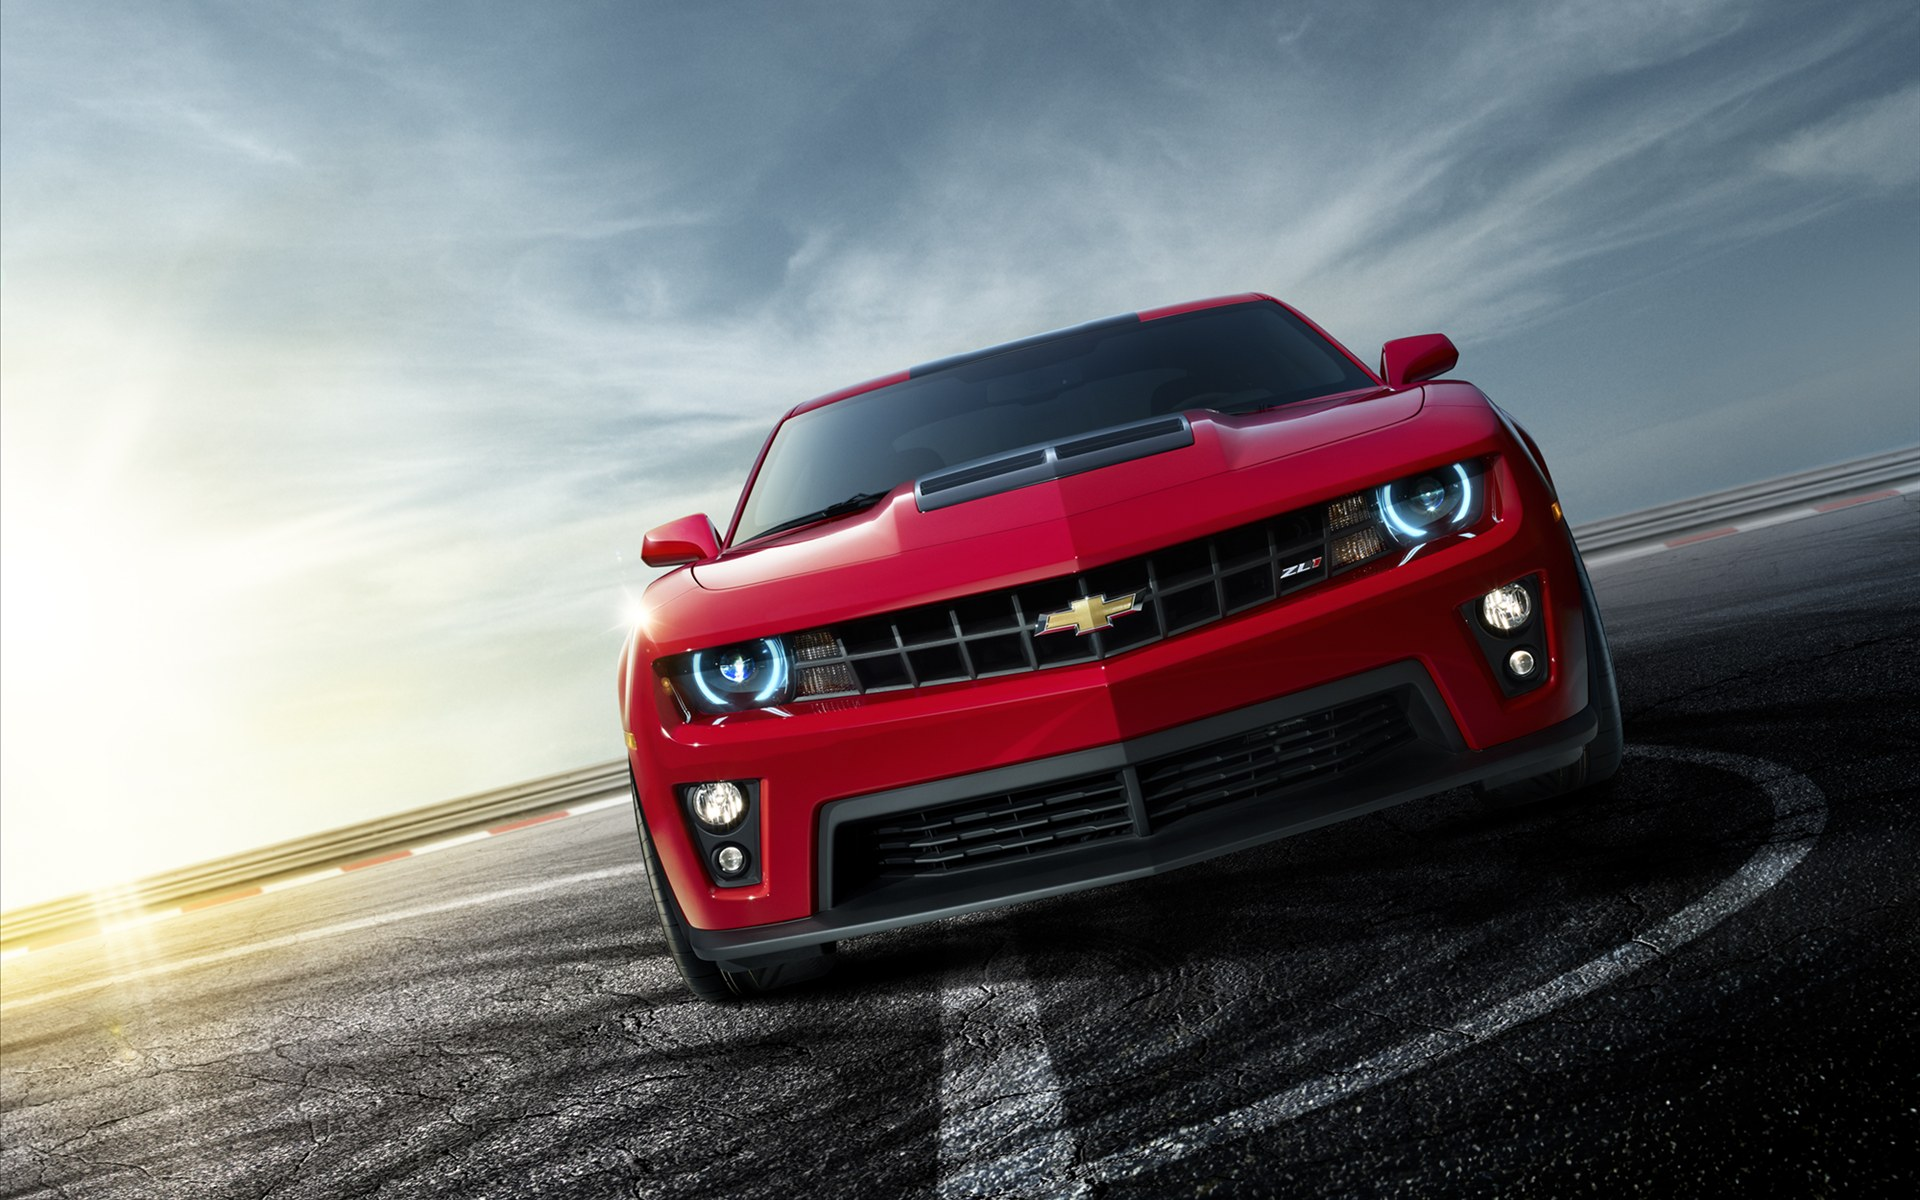 Chevrolet Camaro Zl1 2012 Wallpaper Hd Car Wallpapers